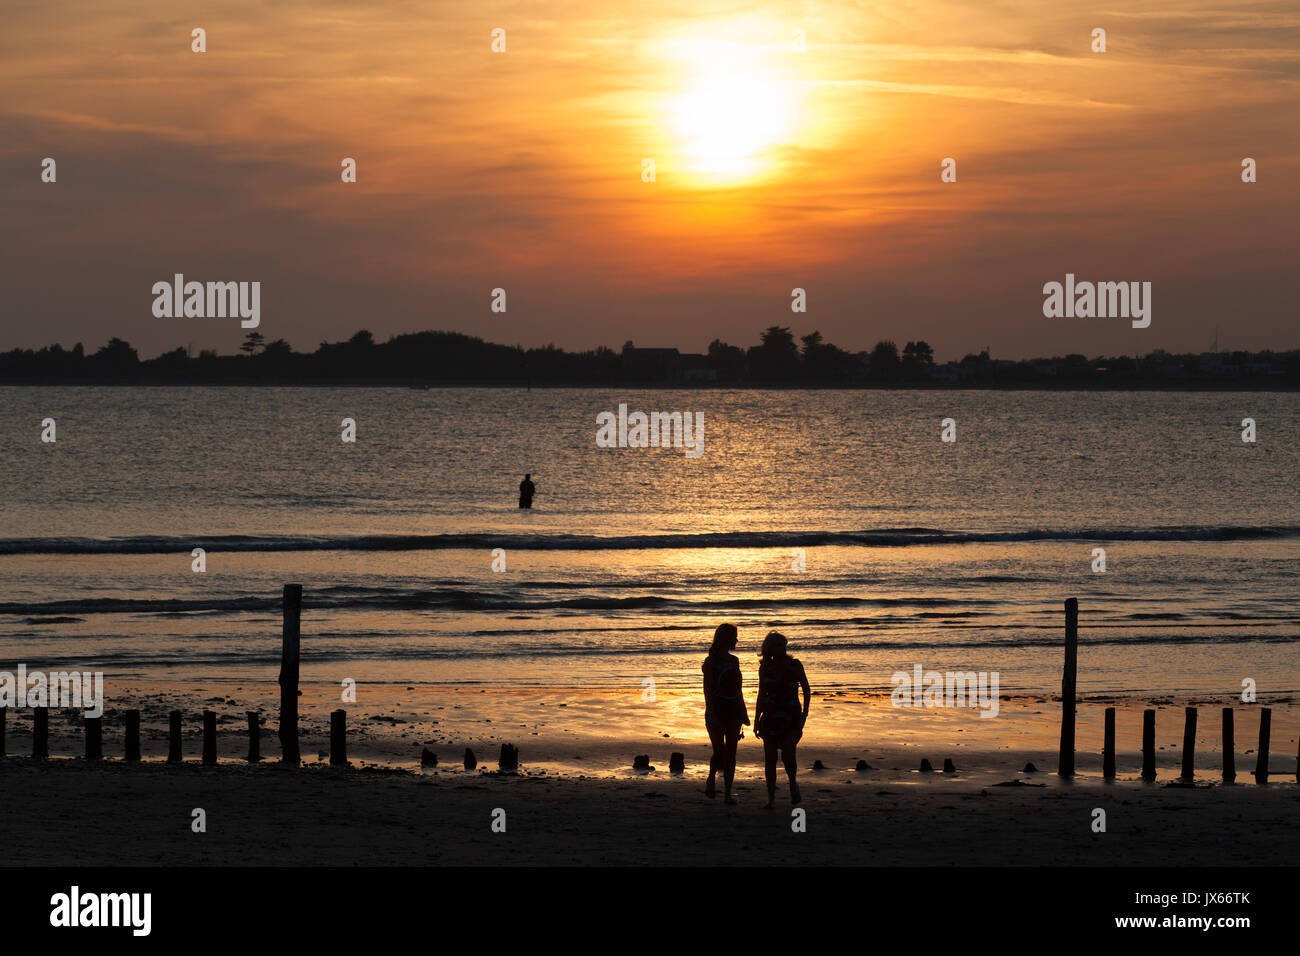 sunset-at-east-head-with-two-women-on-the-beach-west-wittering-west-JX66TK.jpg